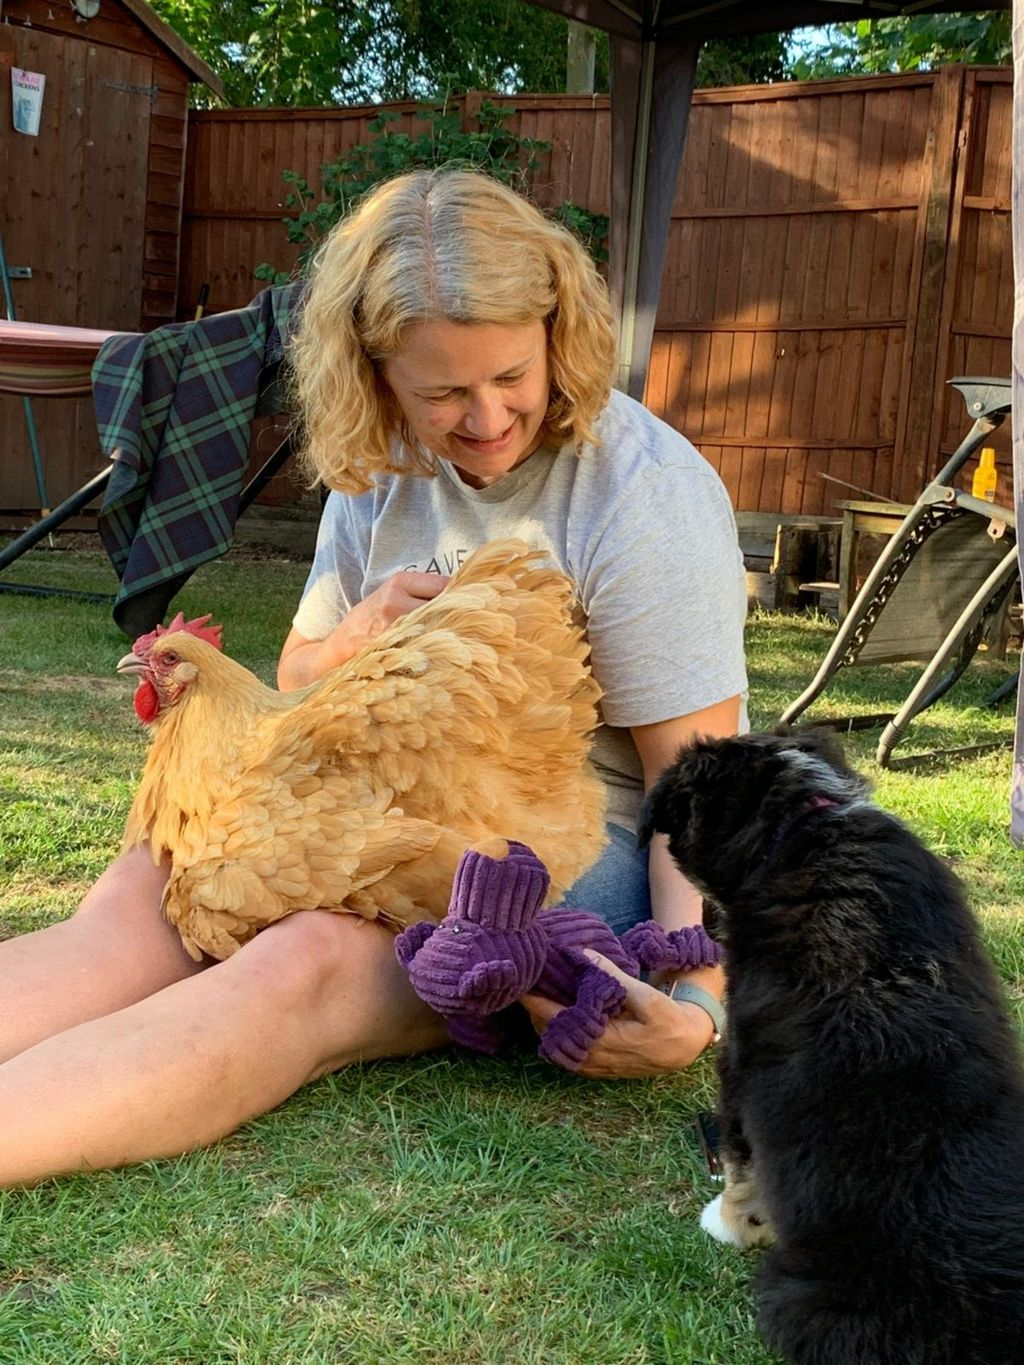 Sarah Chidwick at her home in Claverham with one of her chickens and her dog